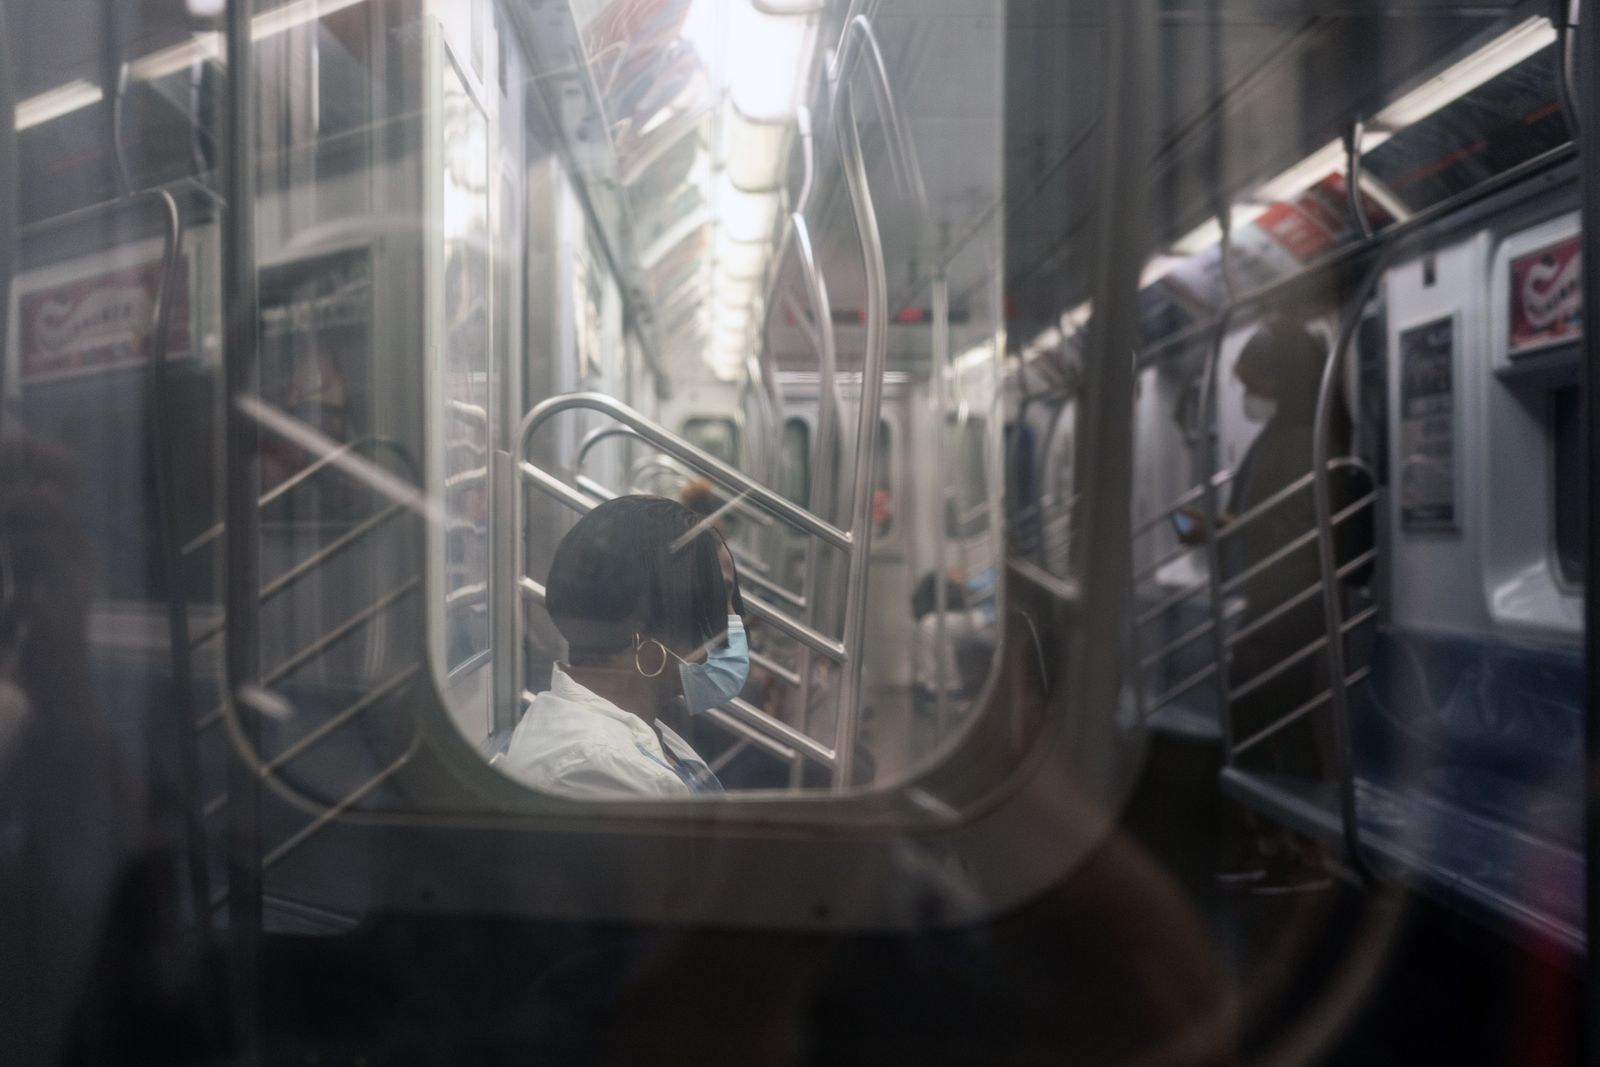 Riders and revenues are way down at the Metropolitan Transportation Authority. (Todd Heisler/The New York Times)